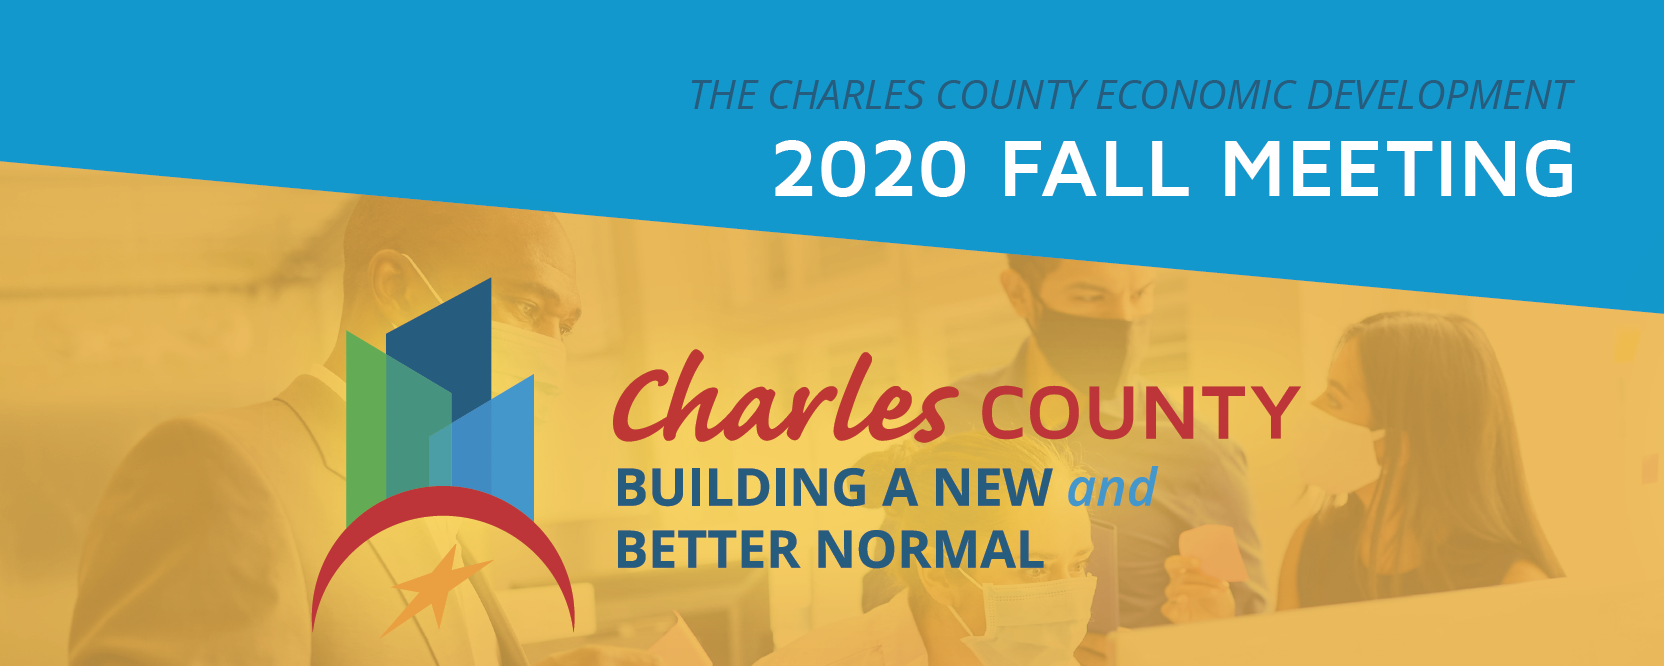 CC-2020-Fall-Meeting-Graphic.png